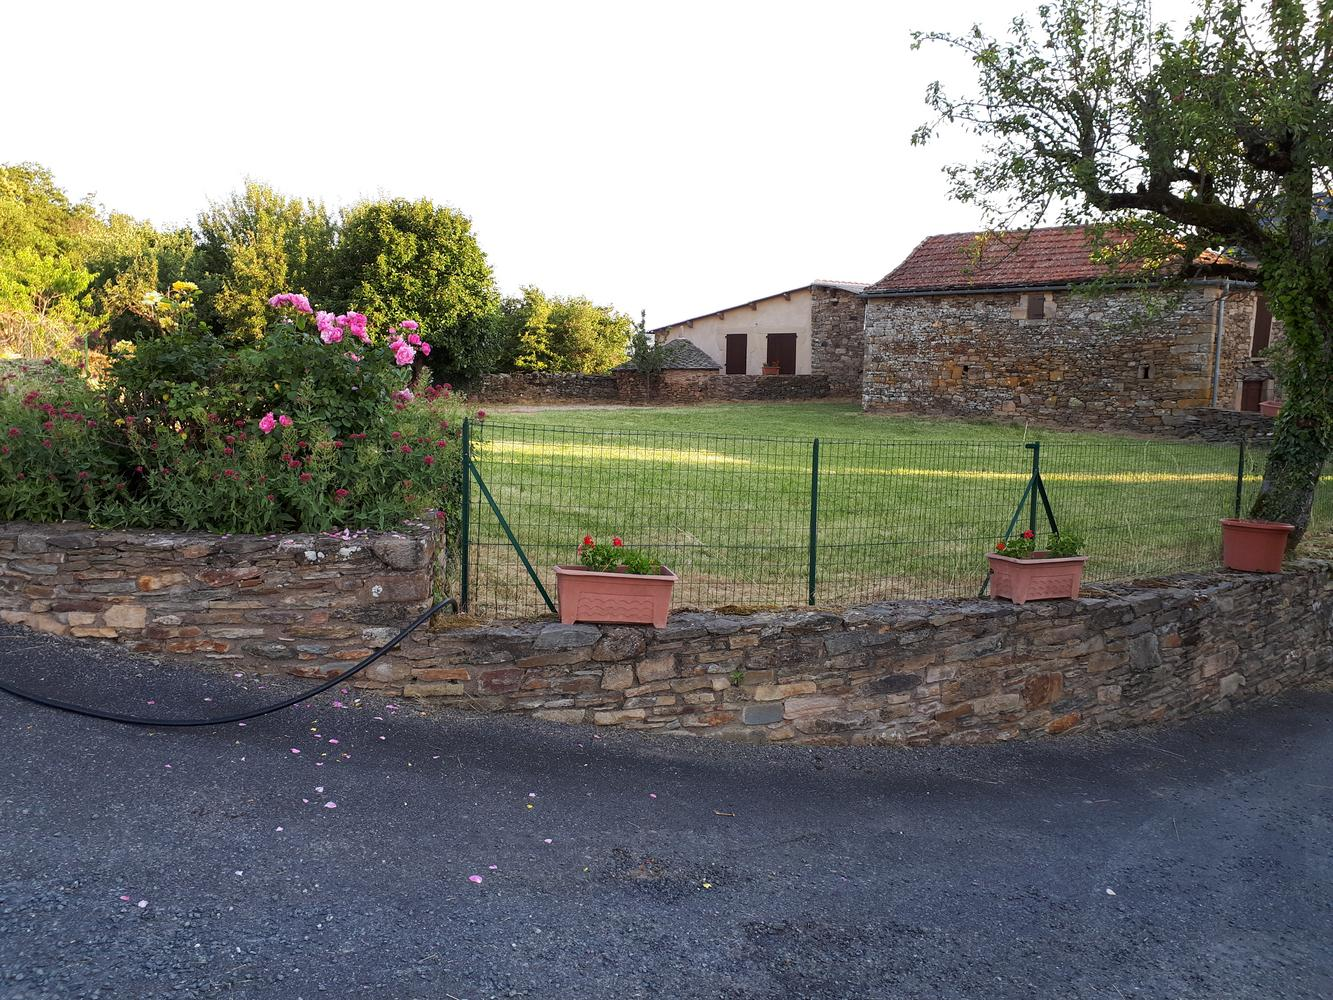 La Callune, Aveyron - photo #15